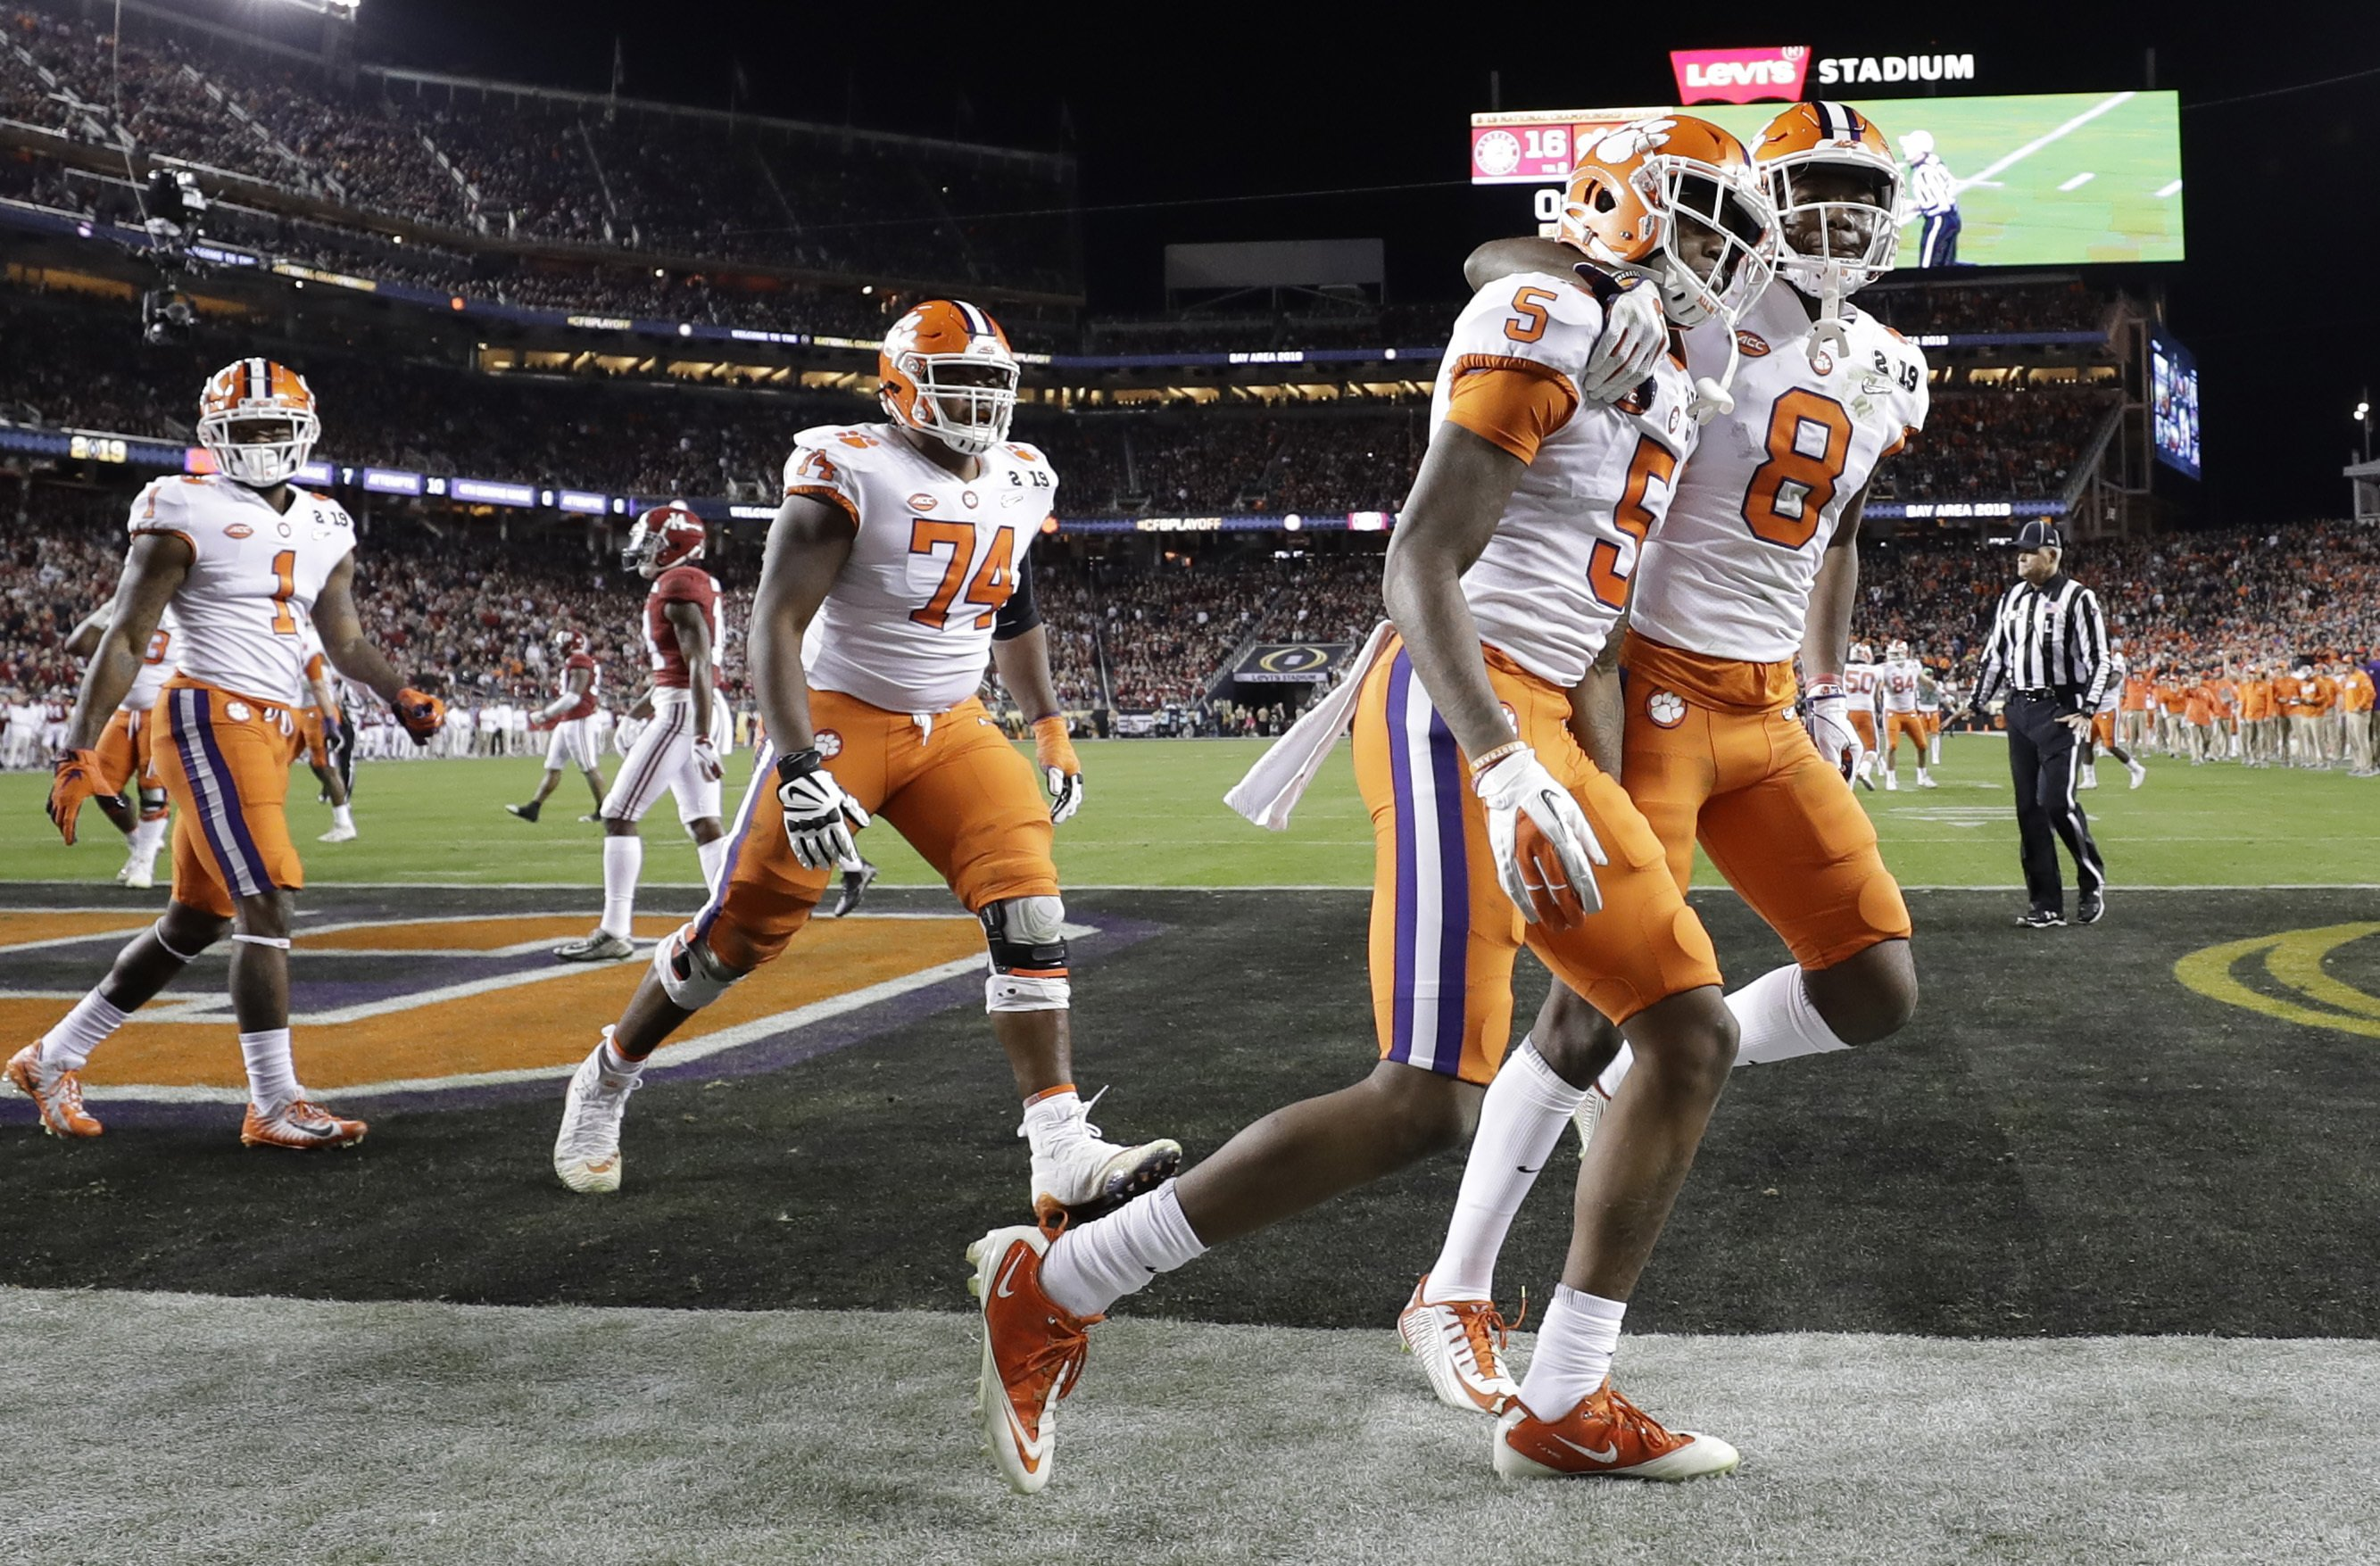 The Latest: Clemson takes 44-16 lead over Tide into fourth